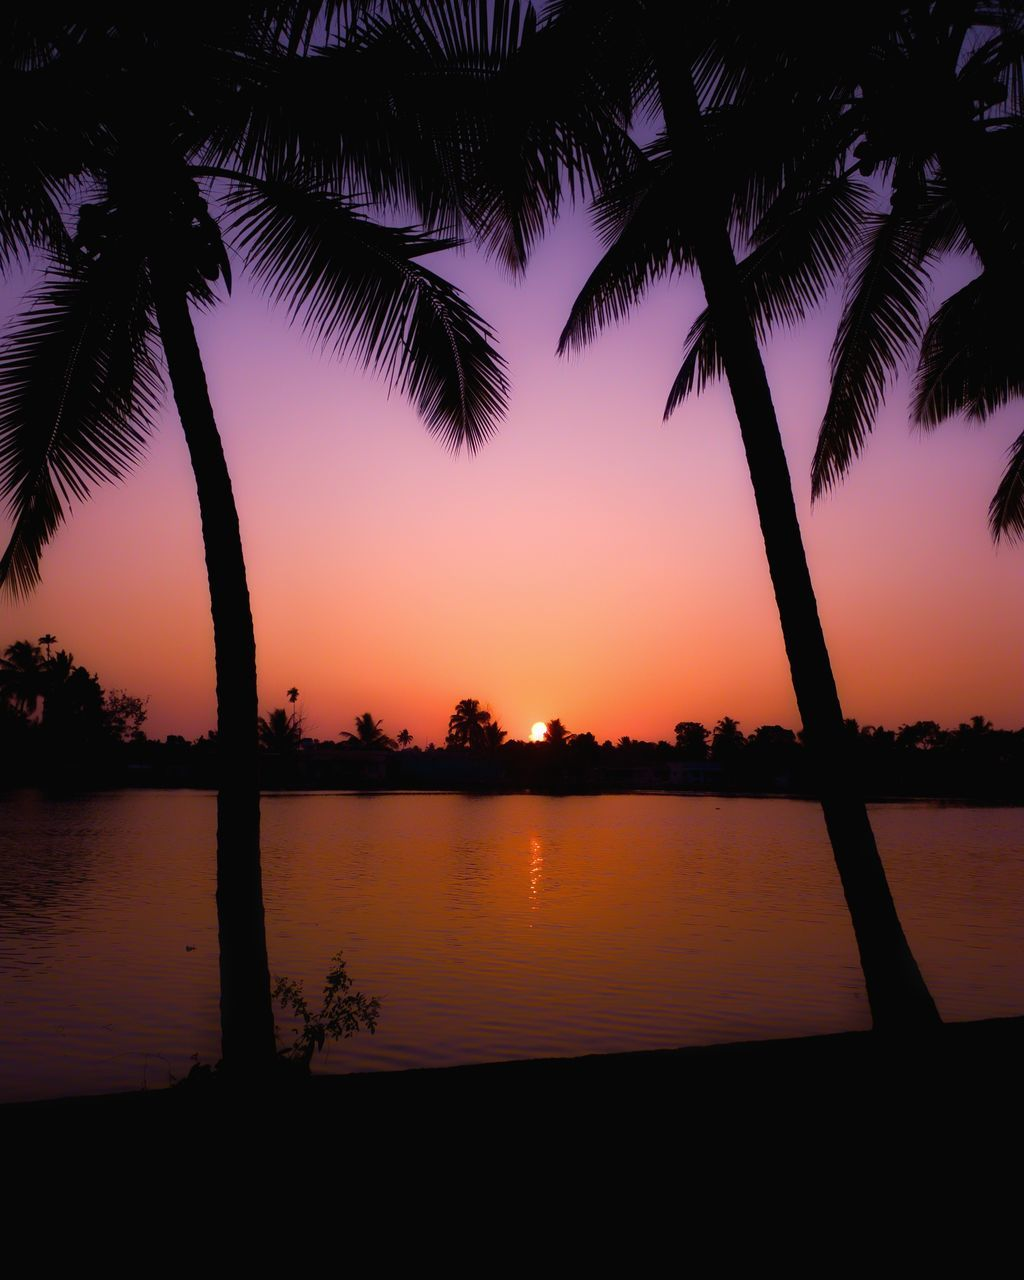 sunset, sky, tree, palm tree, tropical climate, silhouette, water, beauty in nature, tranquil scene, scenics - nature, tranquility, plant, nature, orange color, no people, reflection, growth, idyllic, lake, outdoors, coconut palm tree, swimming pool, palm leaf